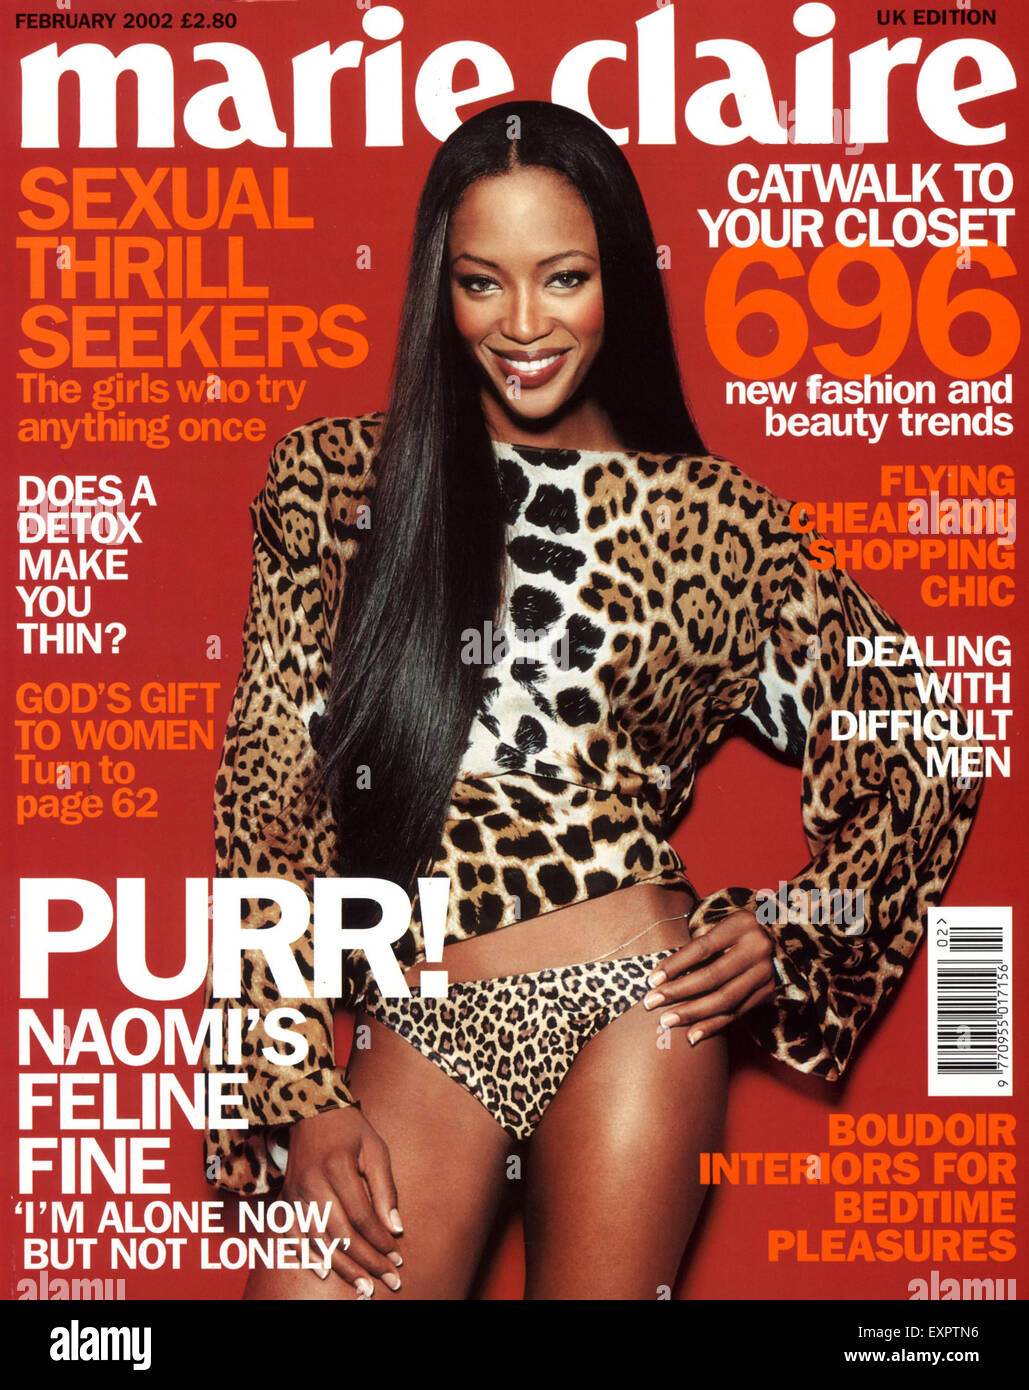 2000s UK Marie Claire Magazine Cover - Stock Image